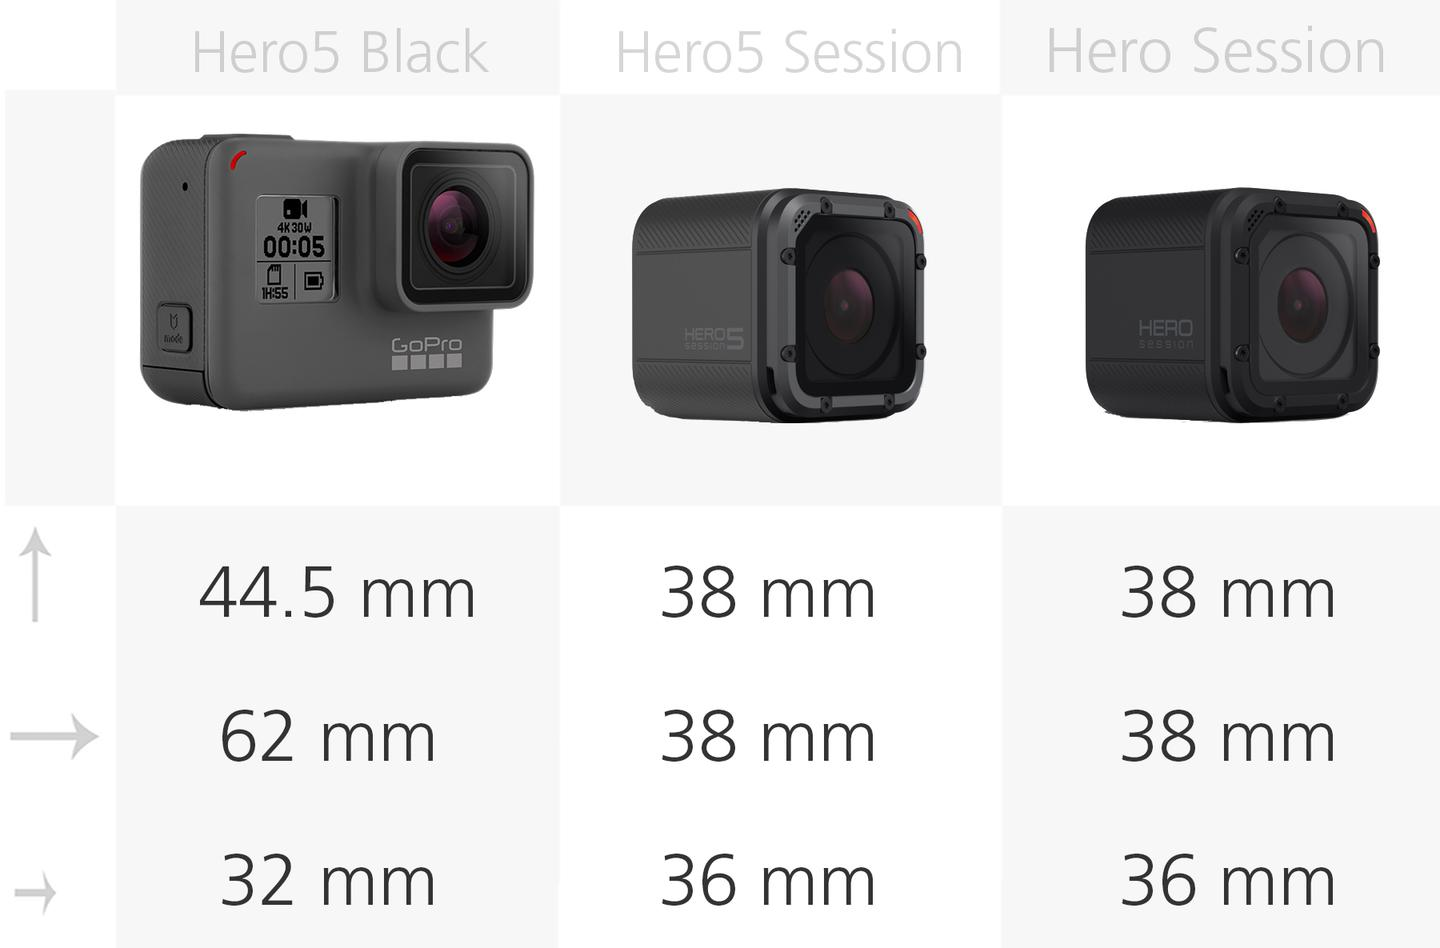 Comparing the size of the GoPro Hero5 Black,Hero5 Session andHero Session